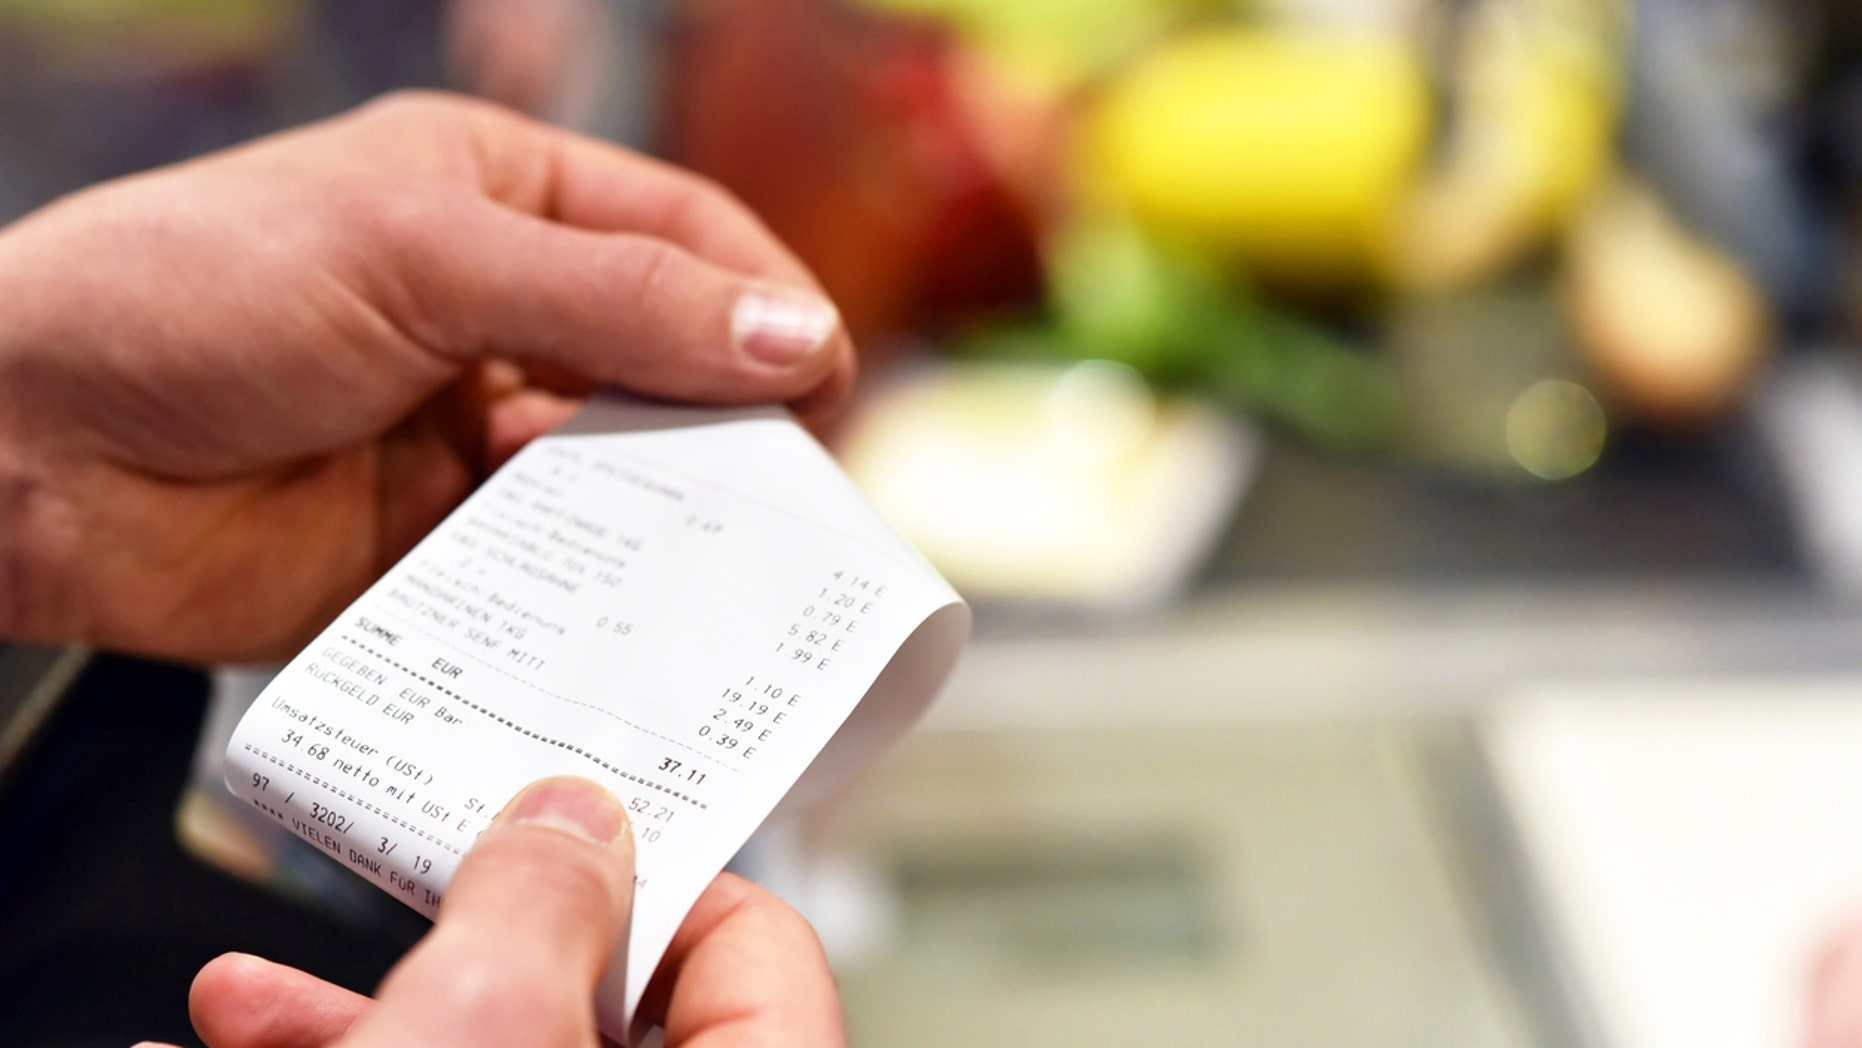 A photo of the receipt (not shown) showed the meal for two came to a hefty €81.40 ($90.89) and shocked social media users when it was shared online.